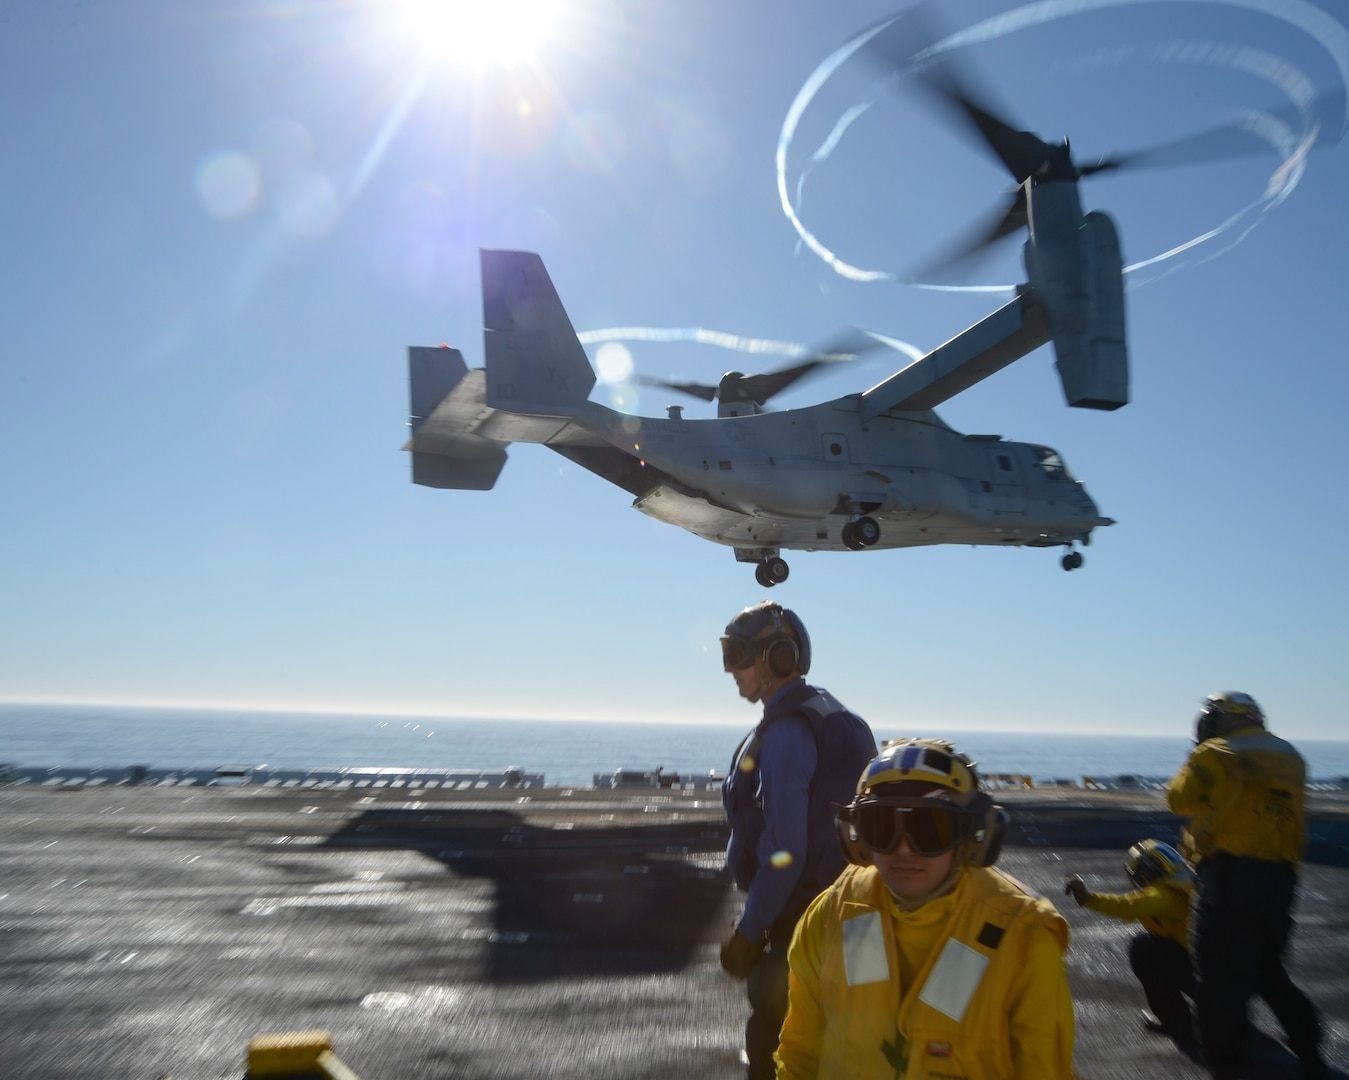 (U.S. Navy photo by Mass Communication Specialist 3rd Class Chandler Harrell/Released)